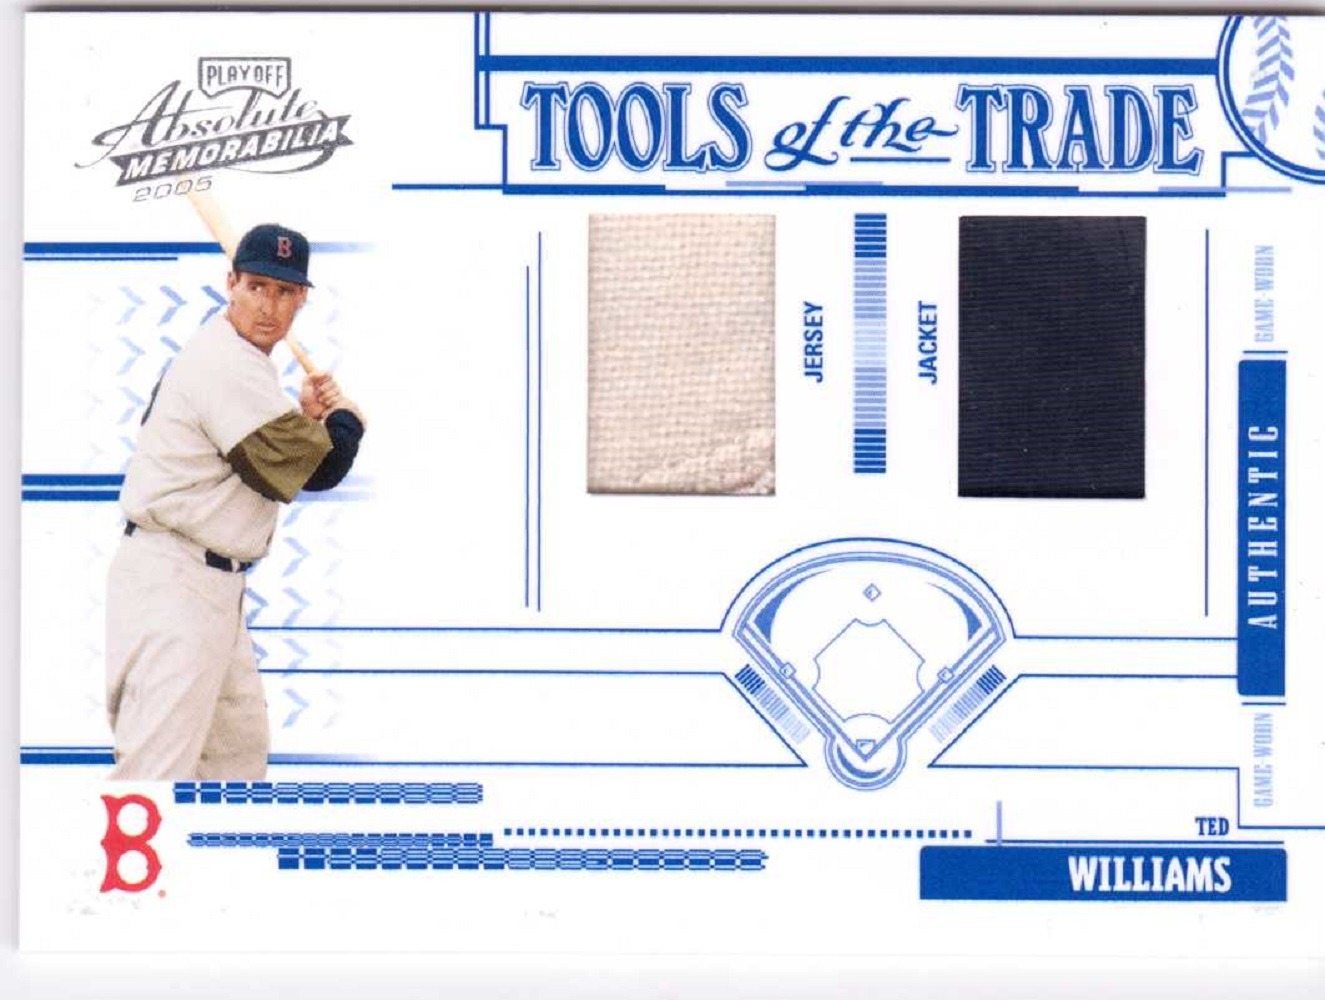 Ted Williams 2005 Absolute Memorabilia Tools of the Trade Swatch#185 Double /100